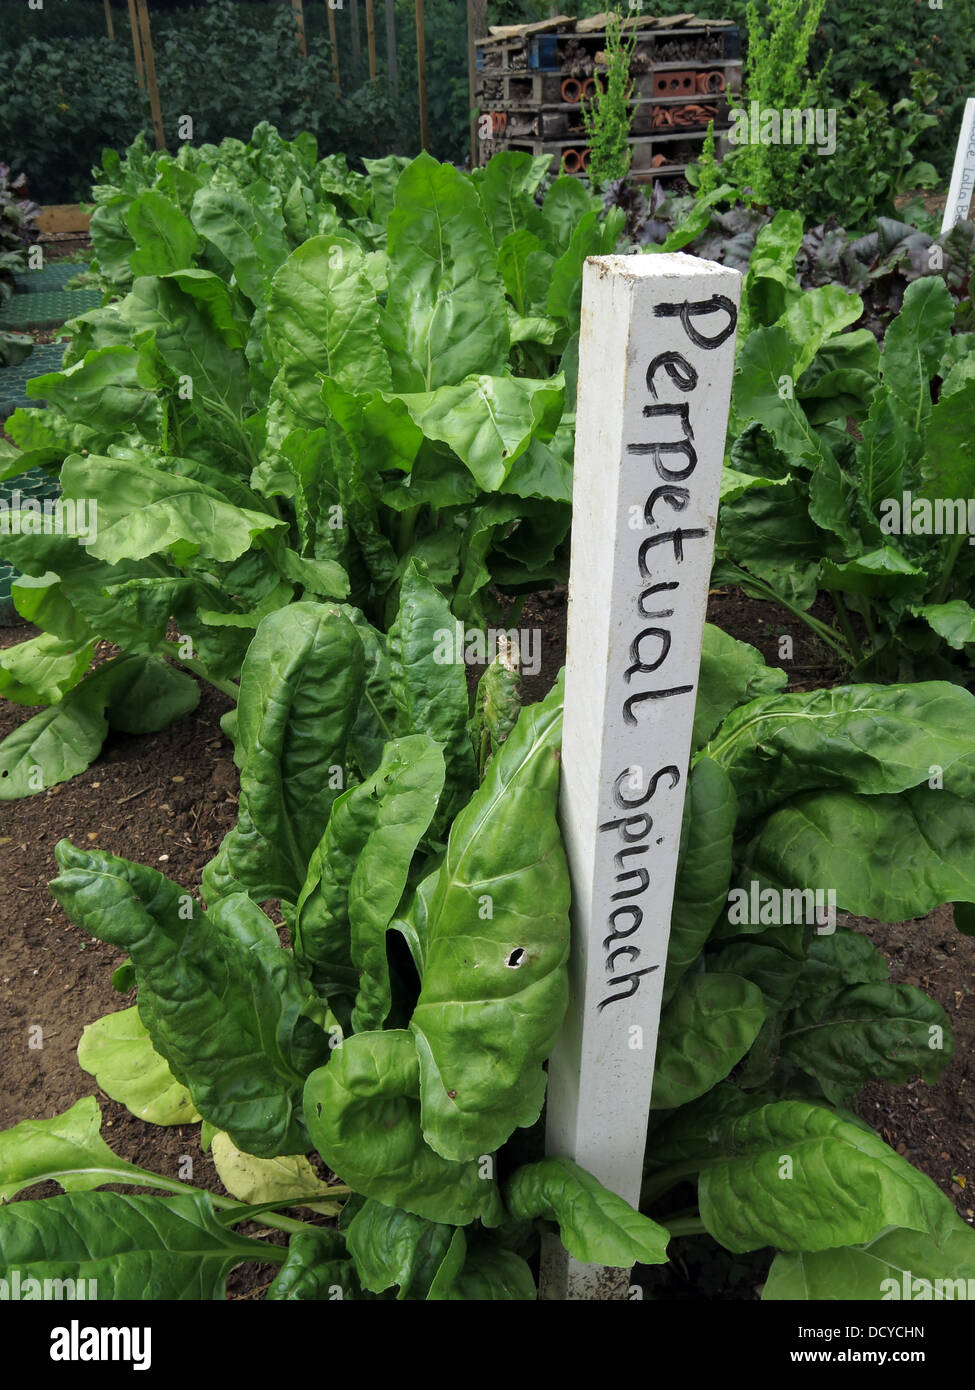 Growing food on the allotment Perpetual spinach - Stock Image